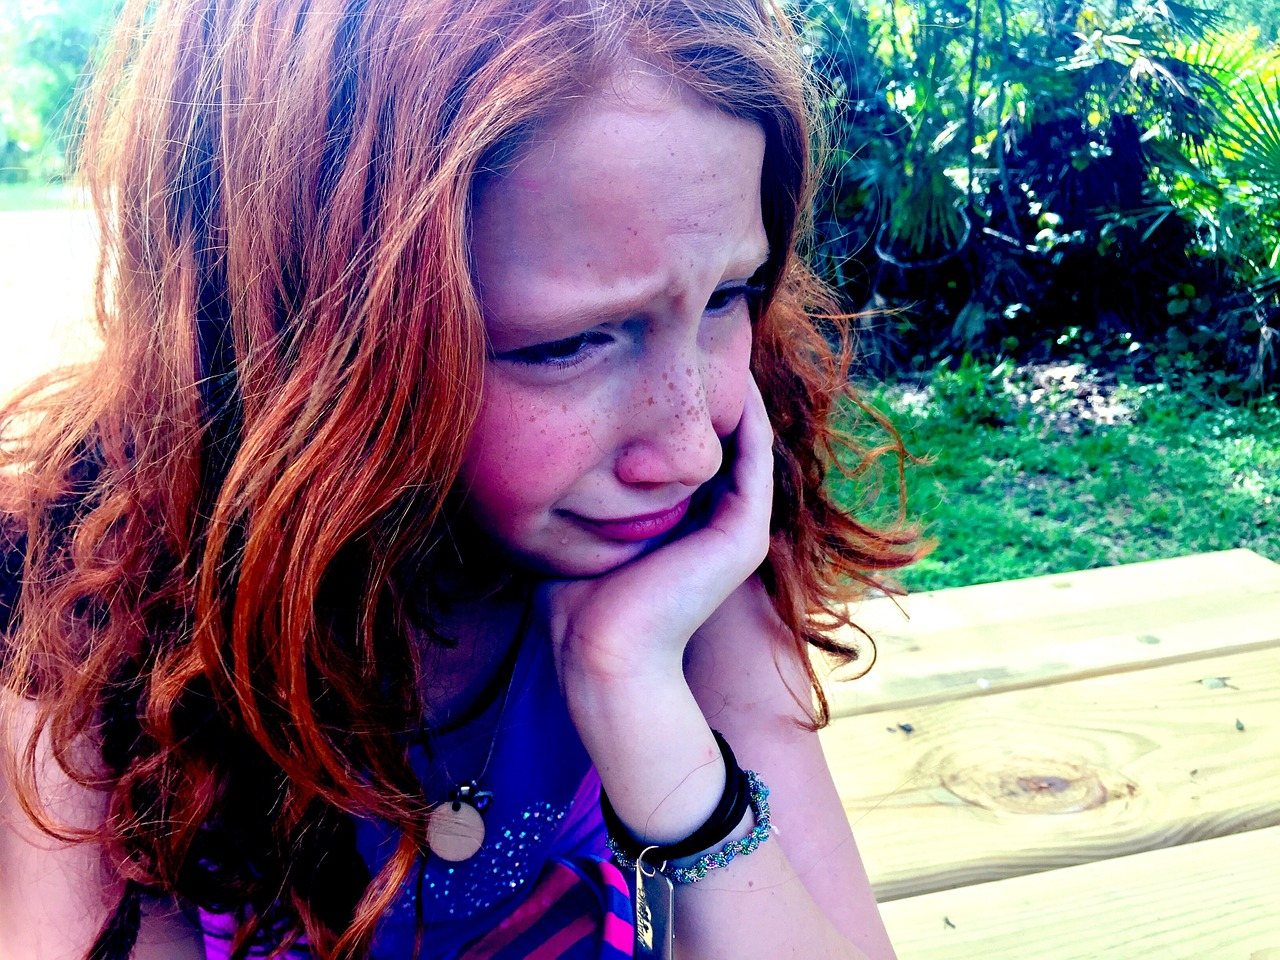 Close up of a young girl with long red hair looking upset